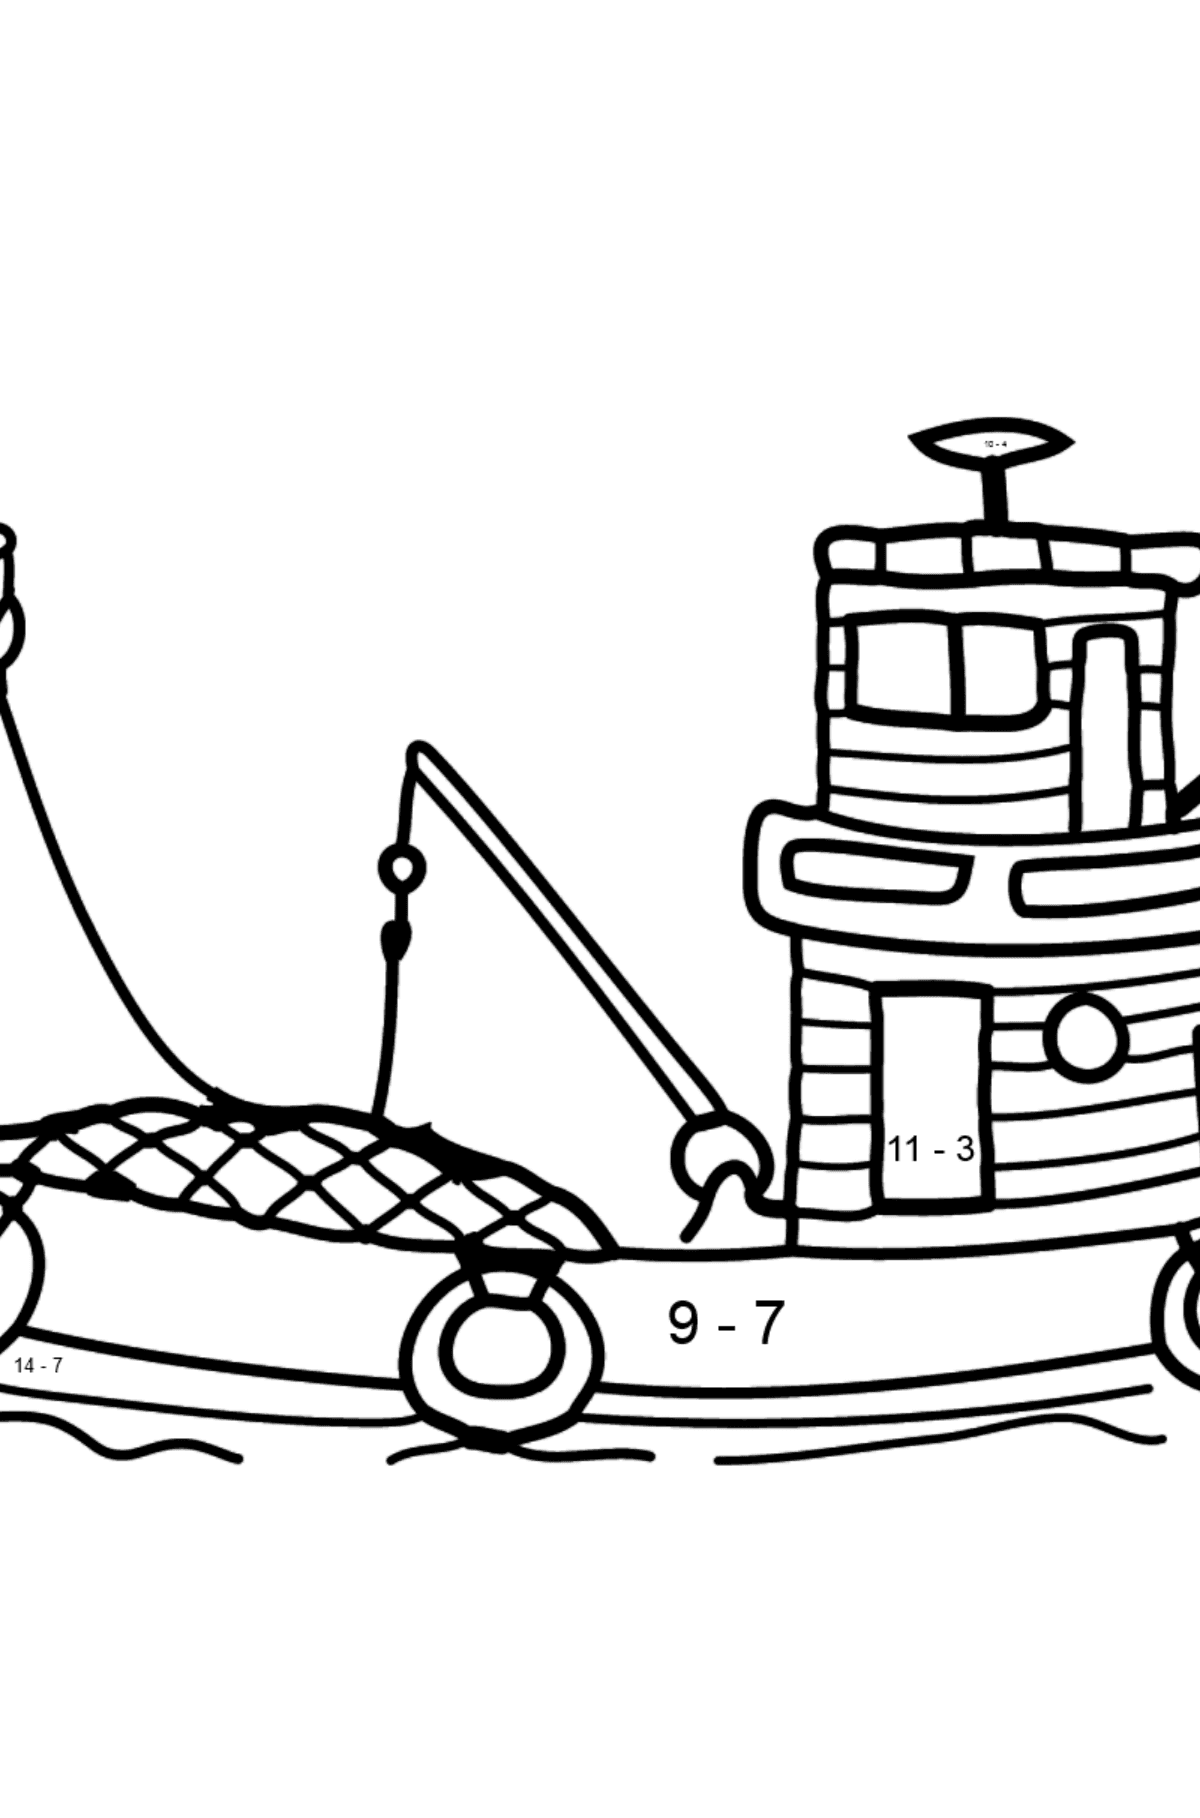 Coloring Page - A Fishing Boat - Math Coloring - Subtraction for Kids